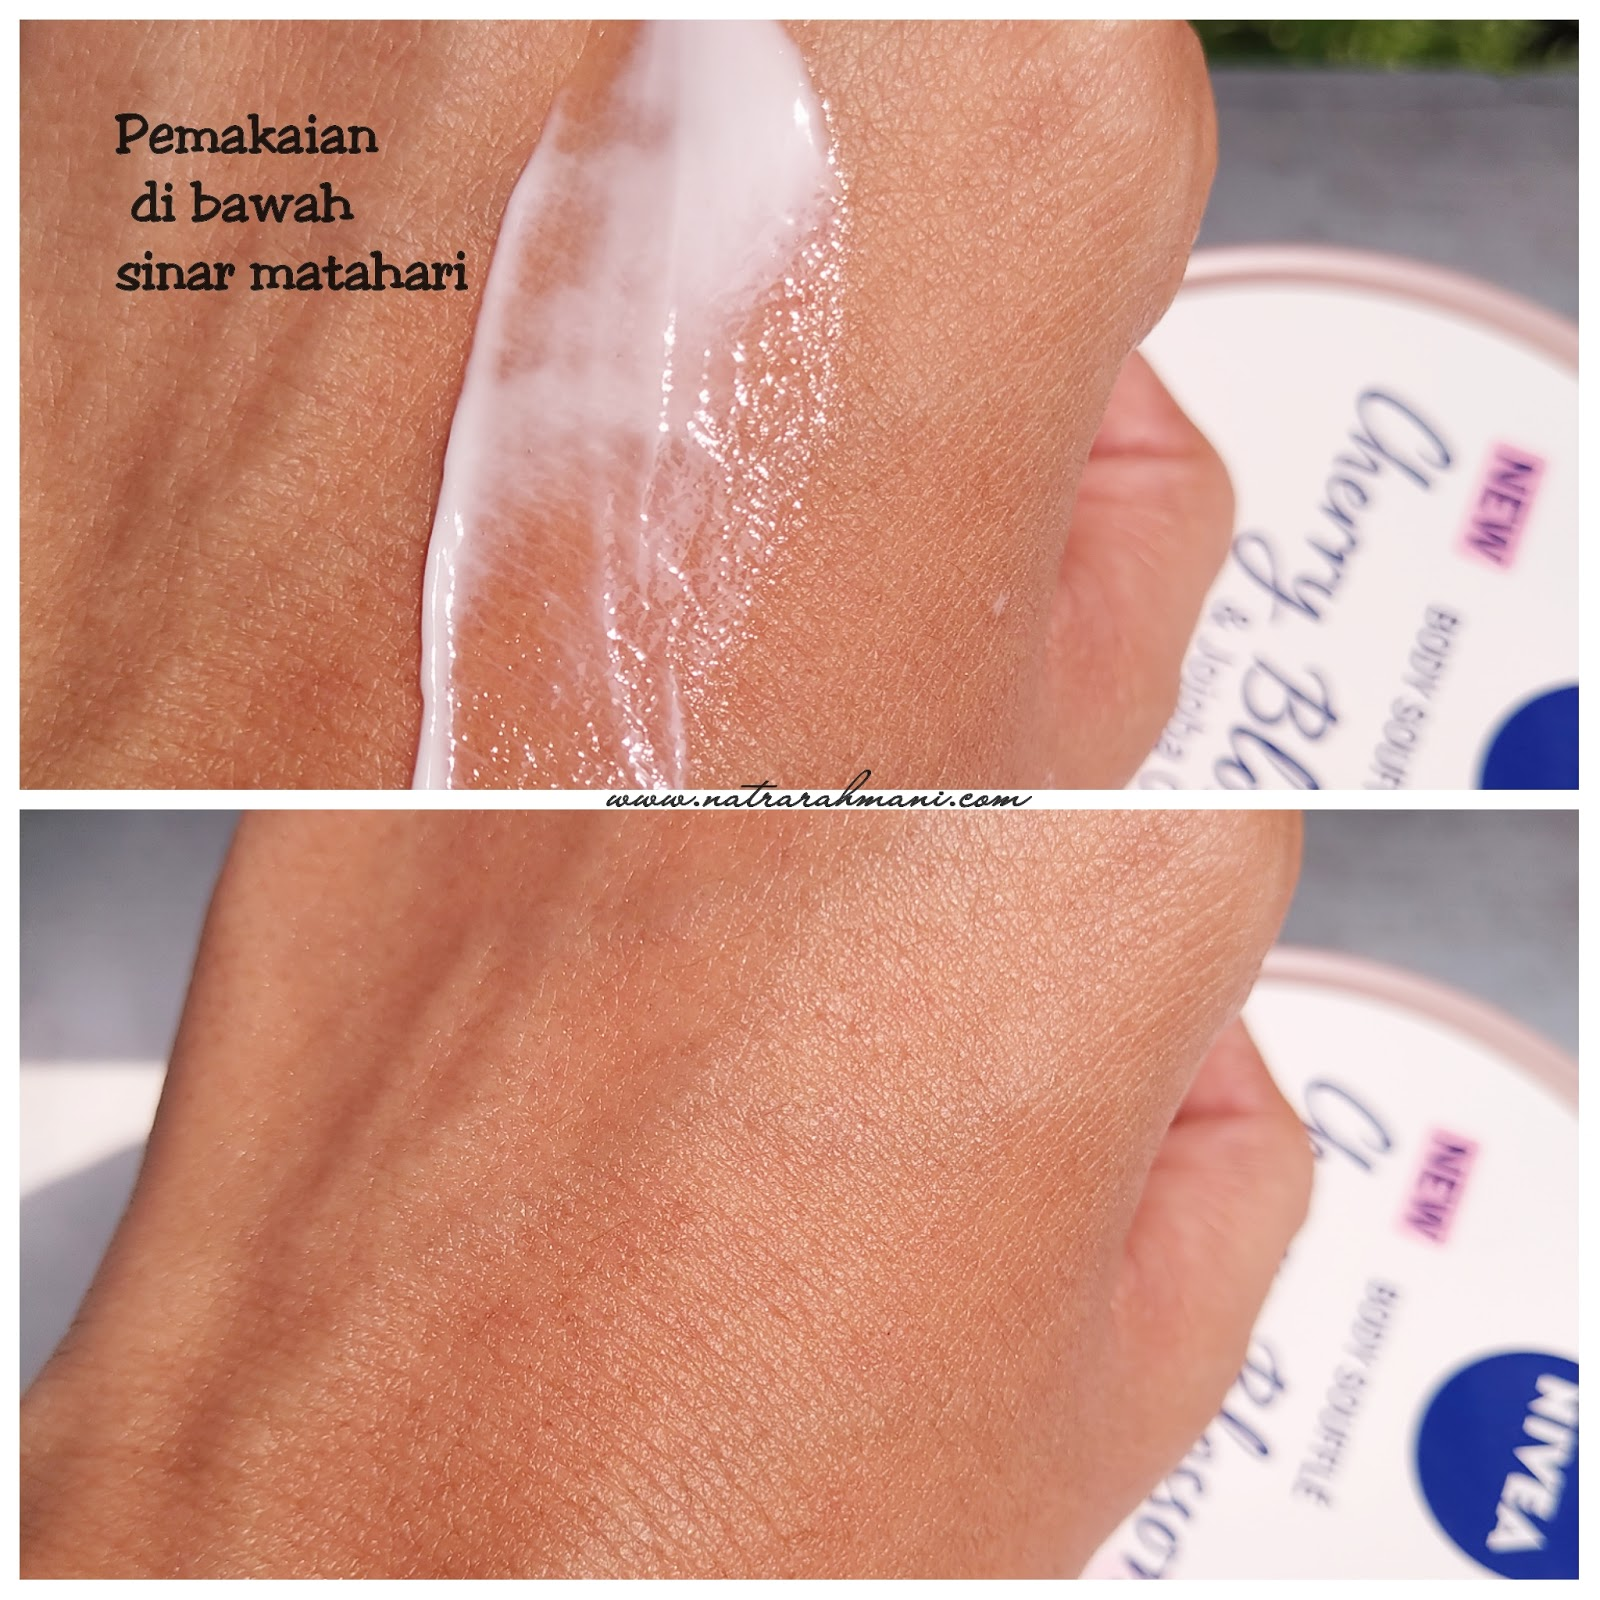 nivea-body-souffle-cherry-blossom-review-natrarahmani